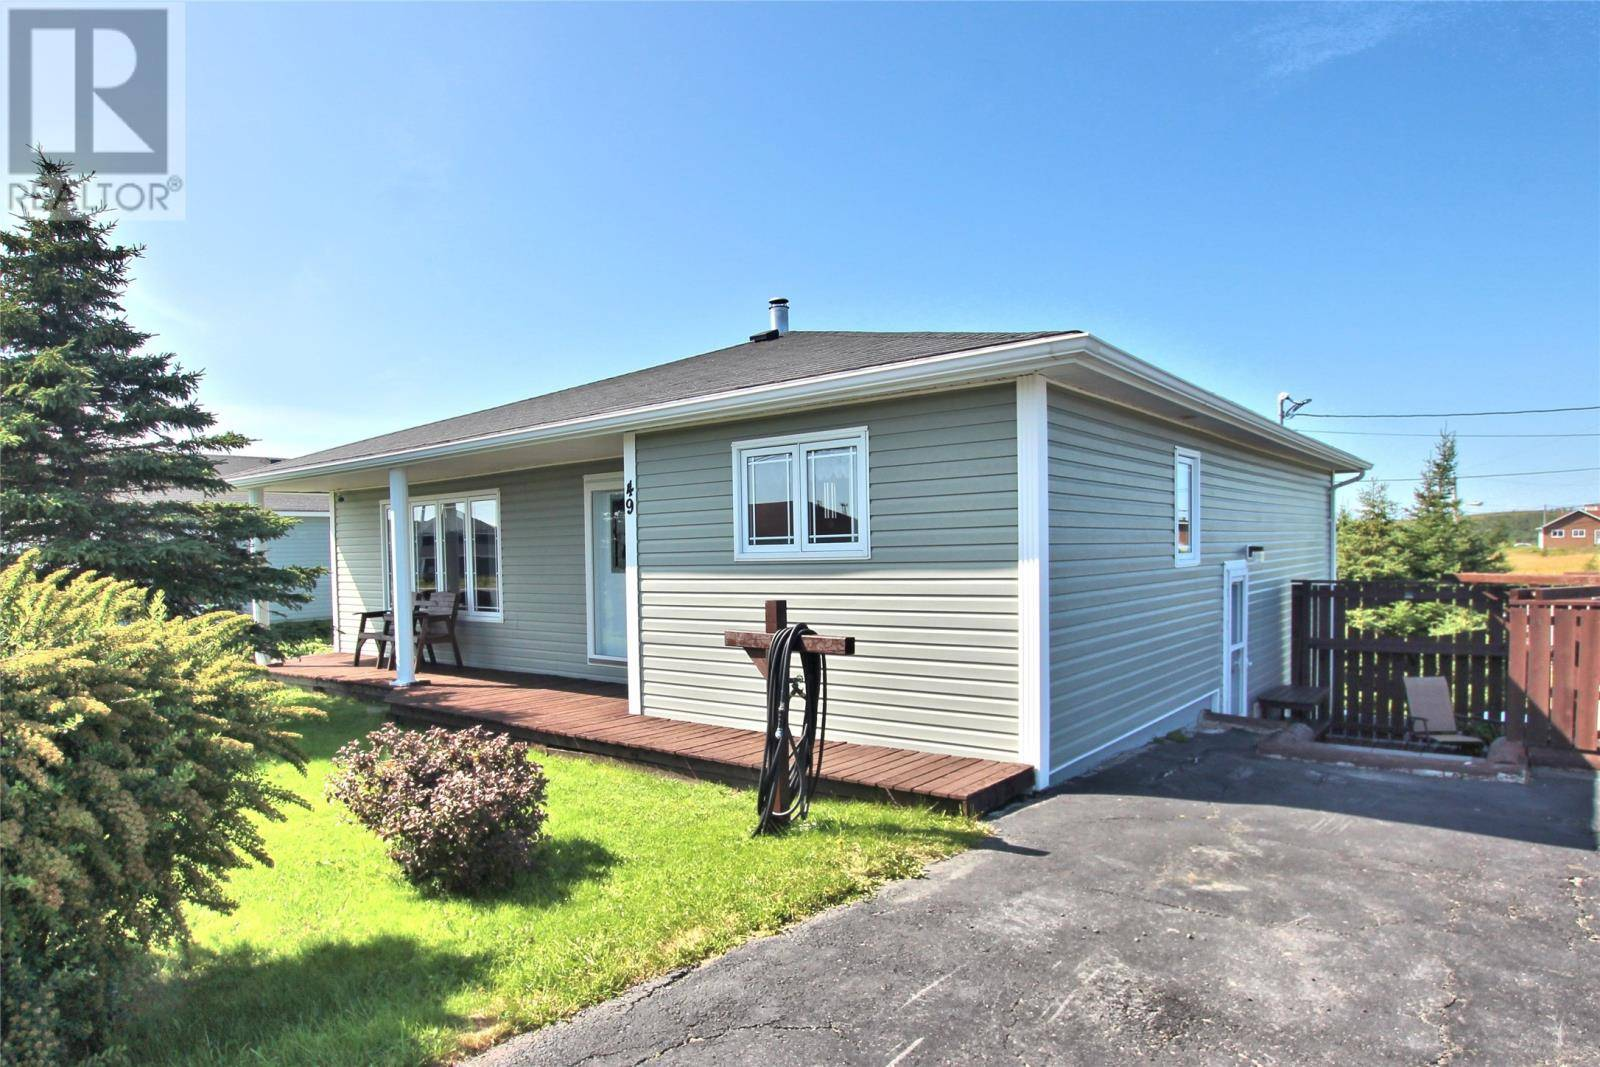 House for sale at 49 Bryants Cove Rd Upper Island Cove Newfoundland - MLS: 1213021